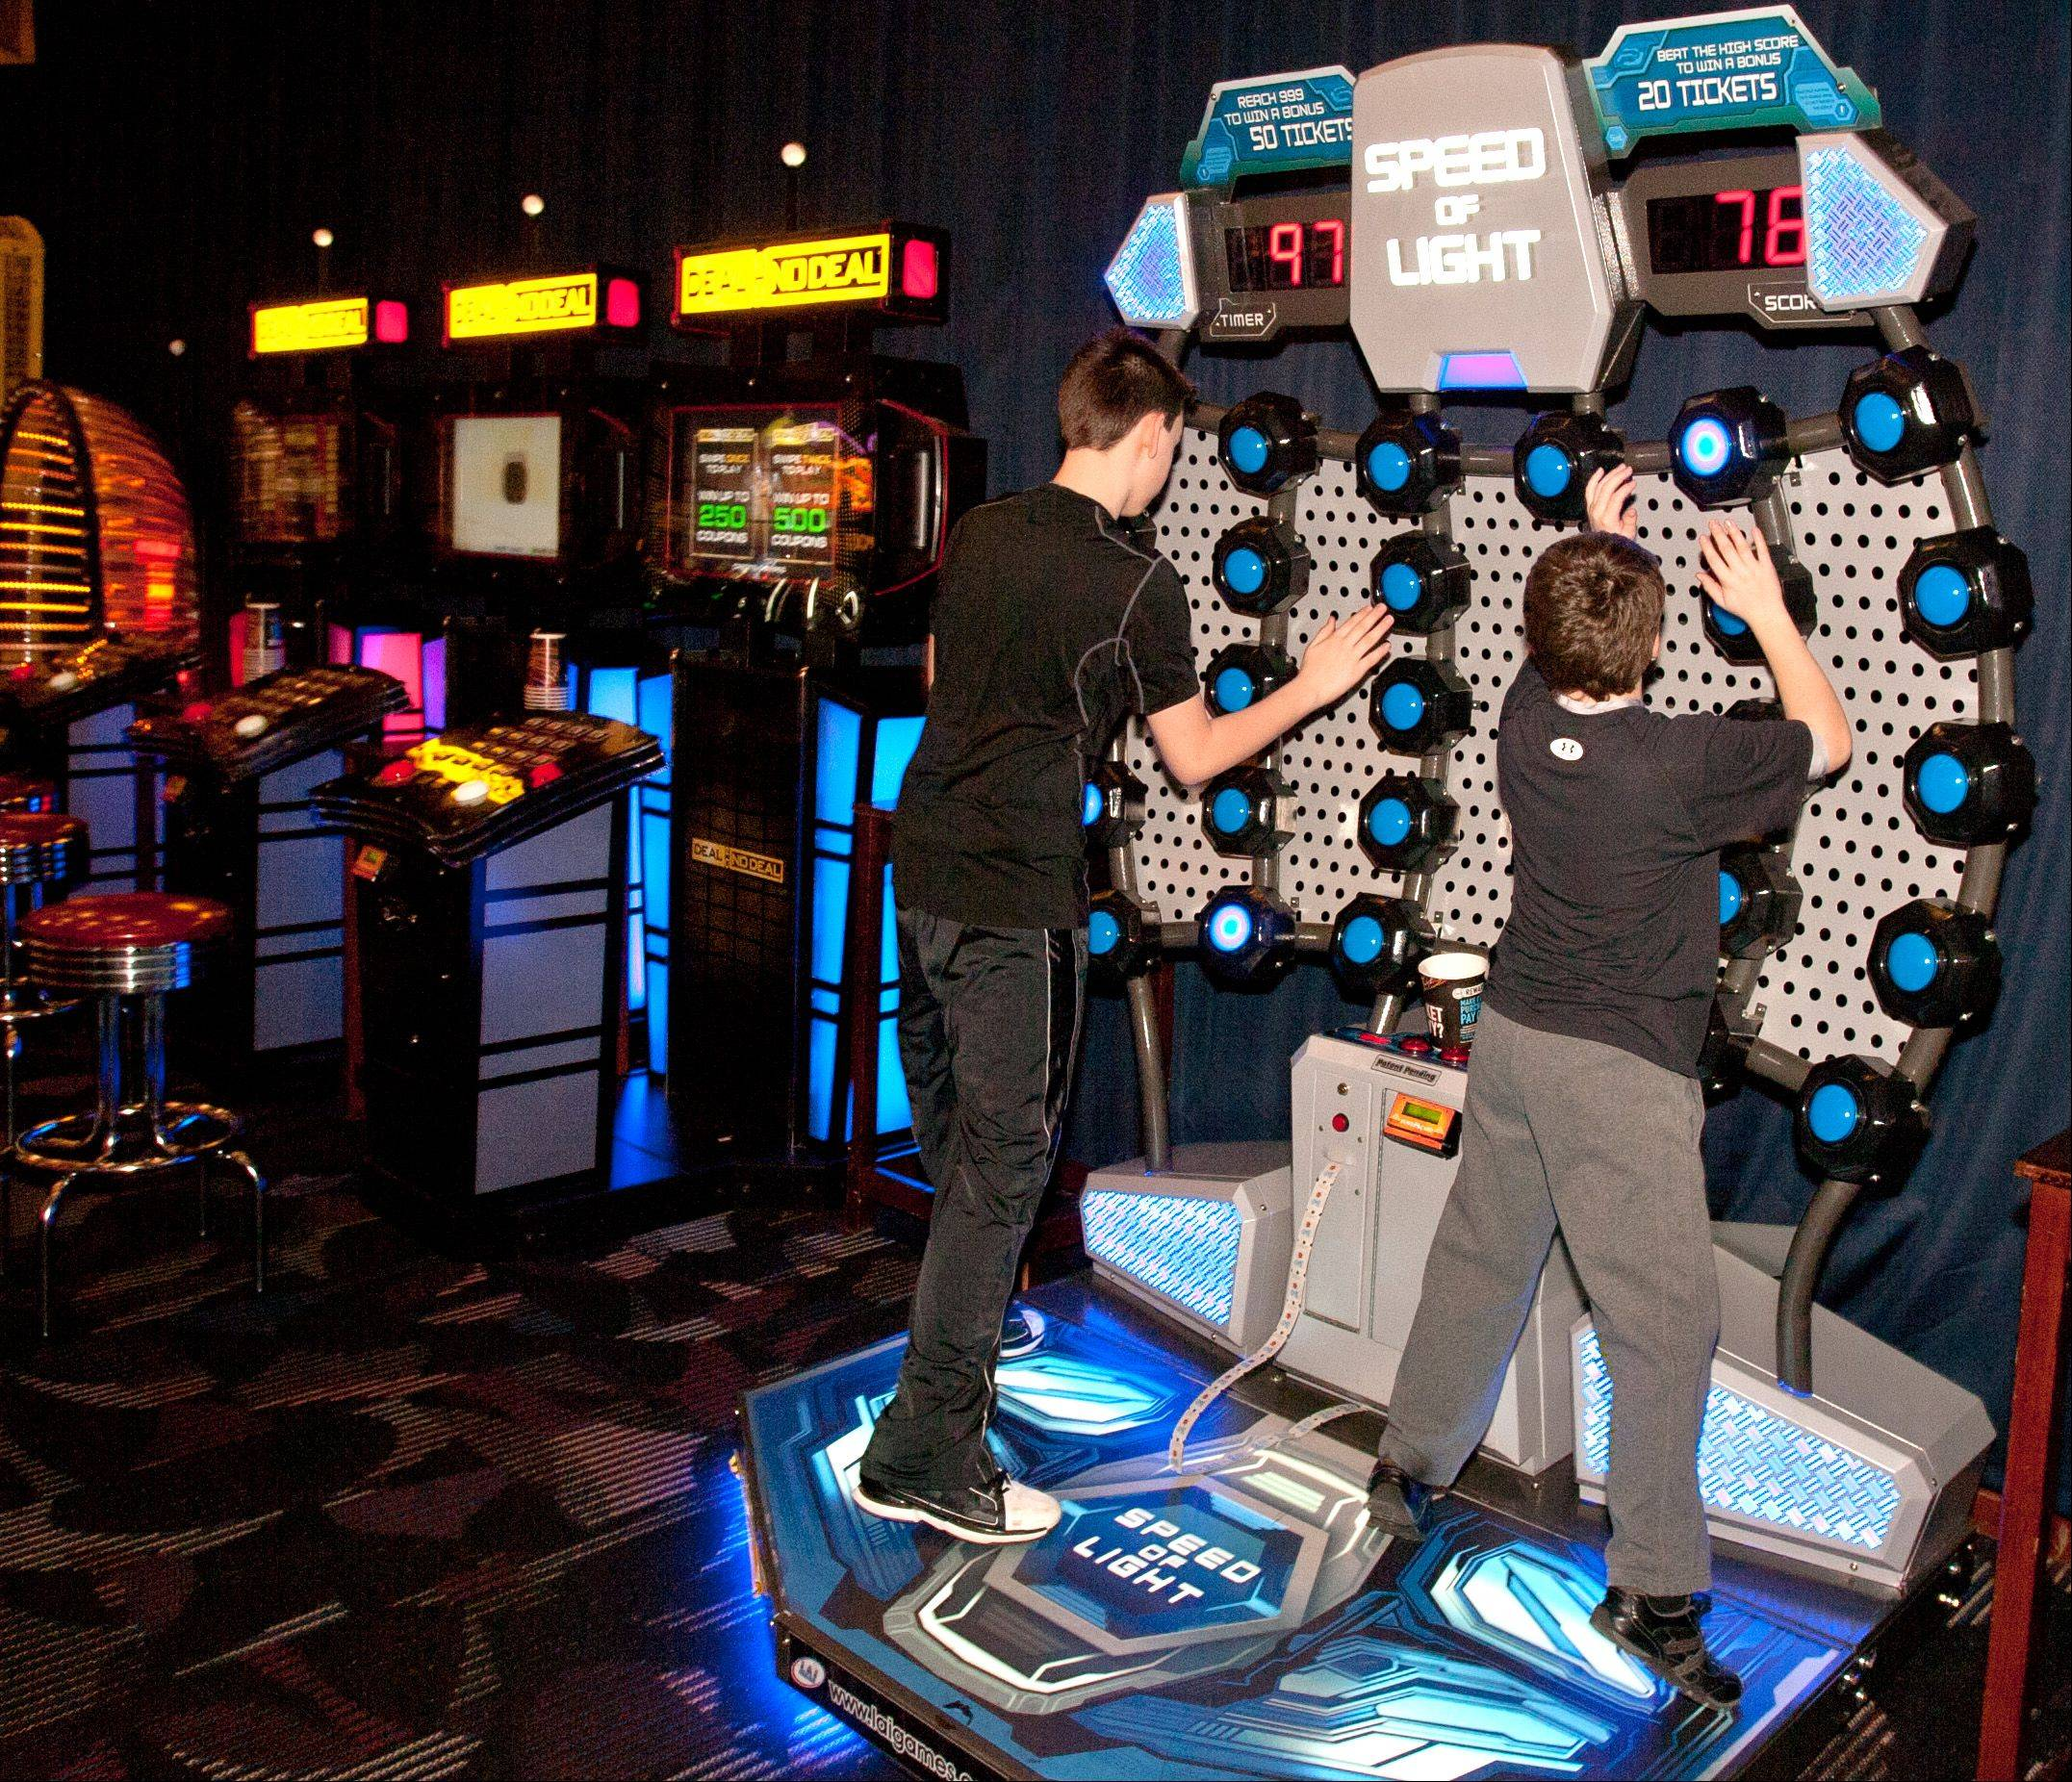 Andrew Gorski, 12, of Plainfield, left, and Griffin Coleman, 12, of Plainfield, right, play Speed of Light, one of the popular interactive video games that gets kids moving at Dave and Buster's in Addison.